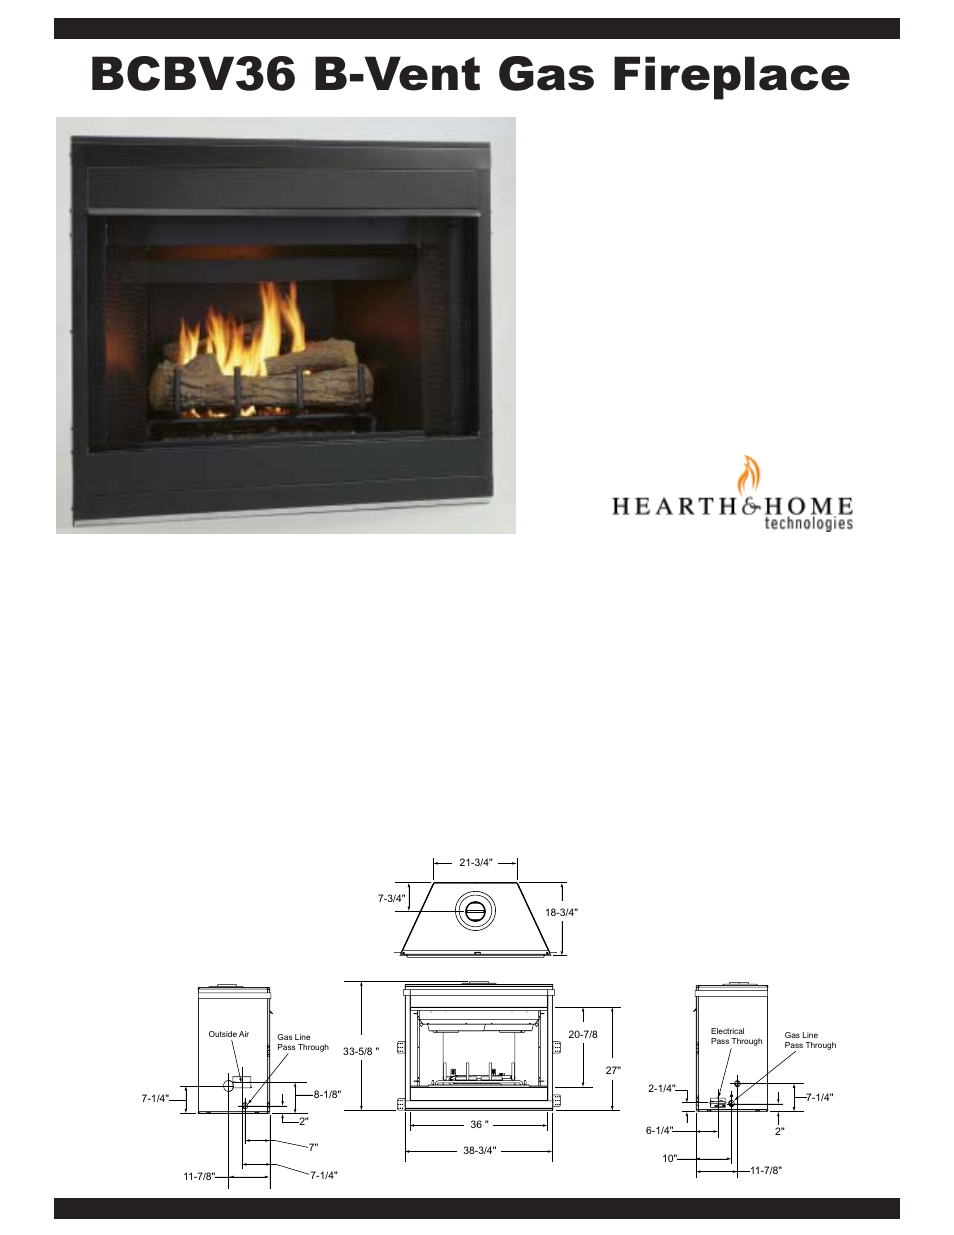 hearth and home technologies b vent gas fireplace bcbv36 user